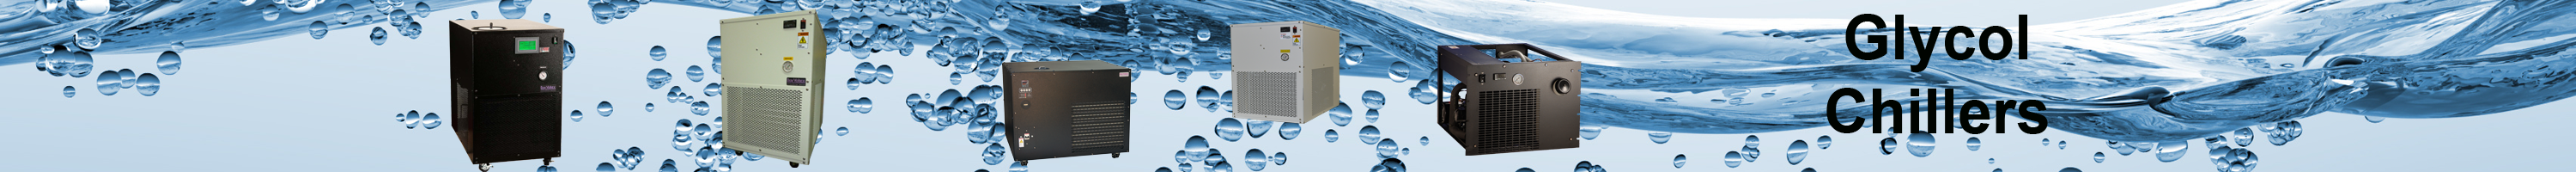 Glycol-Chiller-BV-Thermal-systems